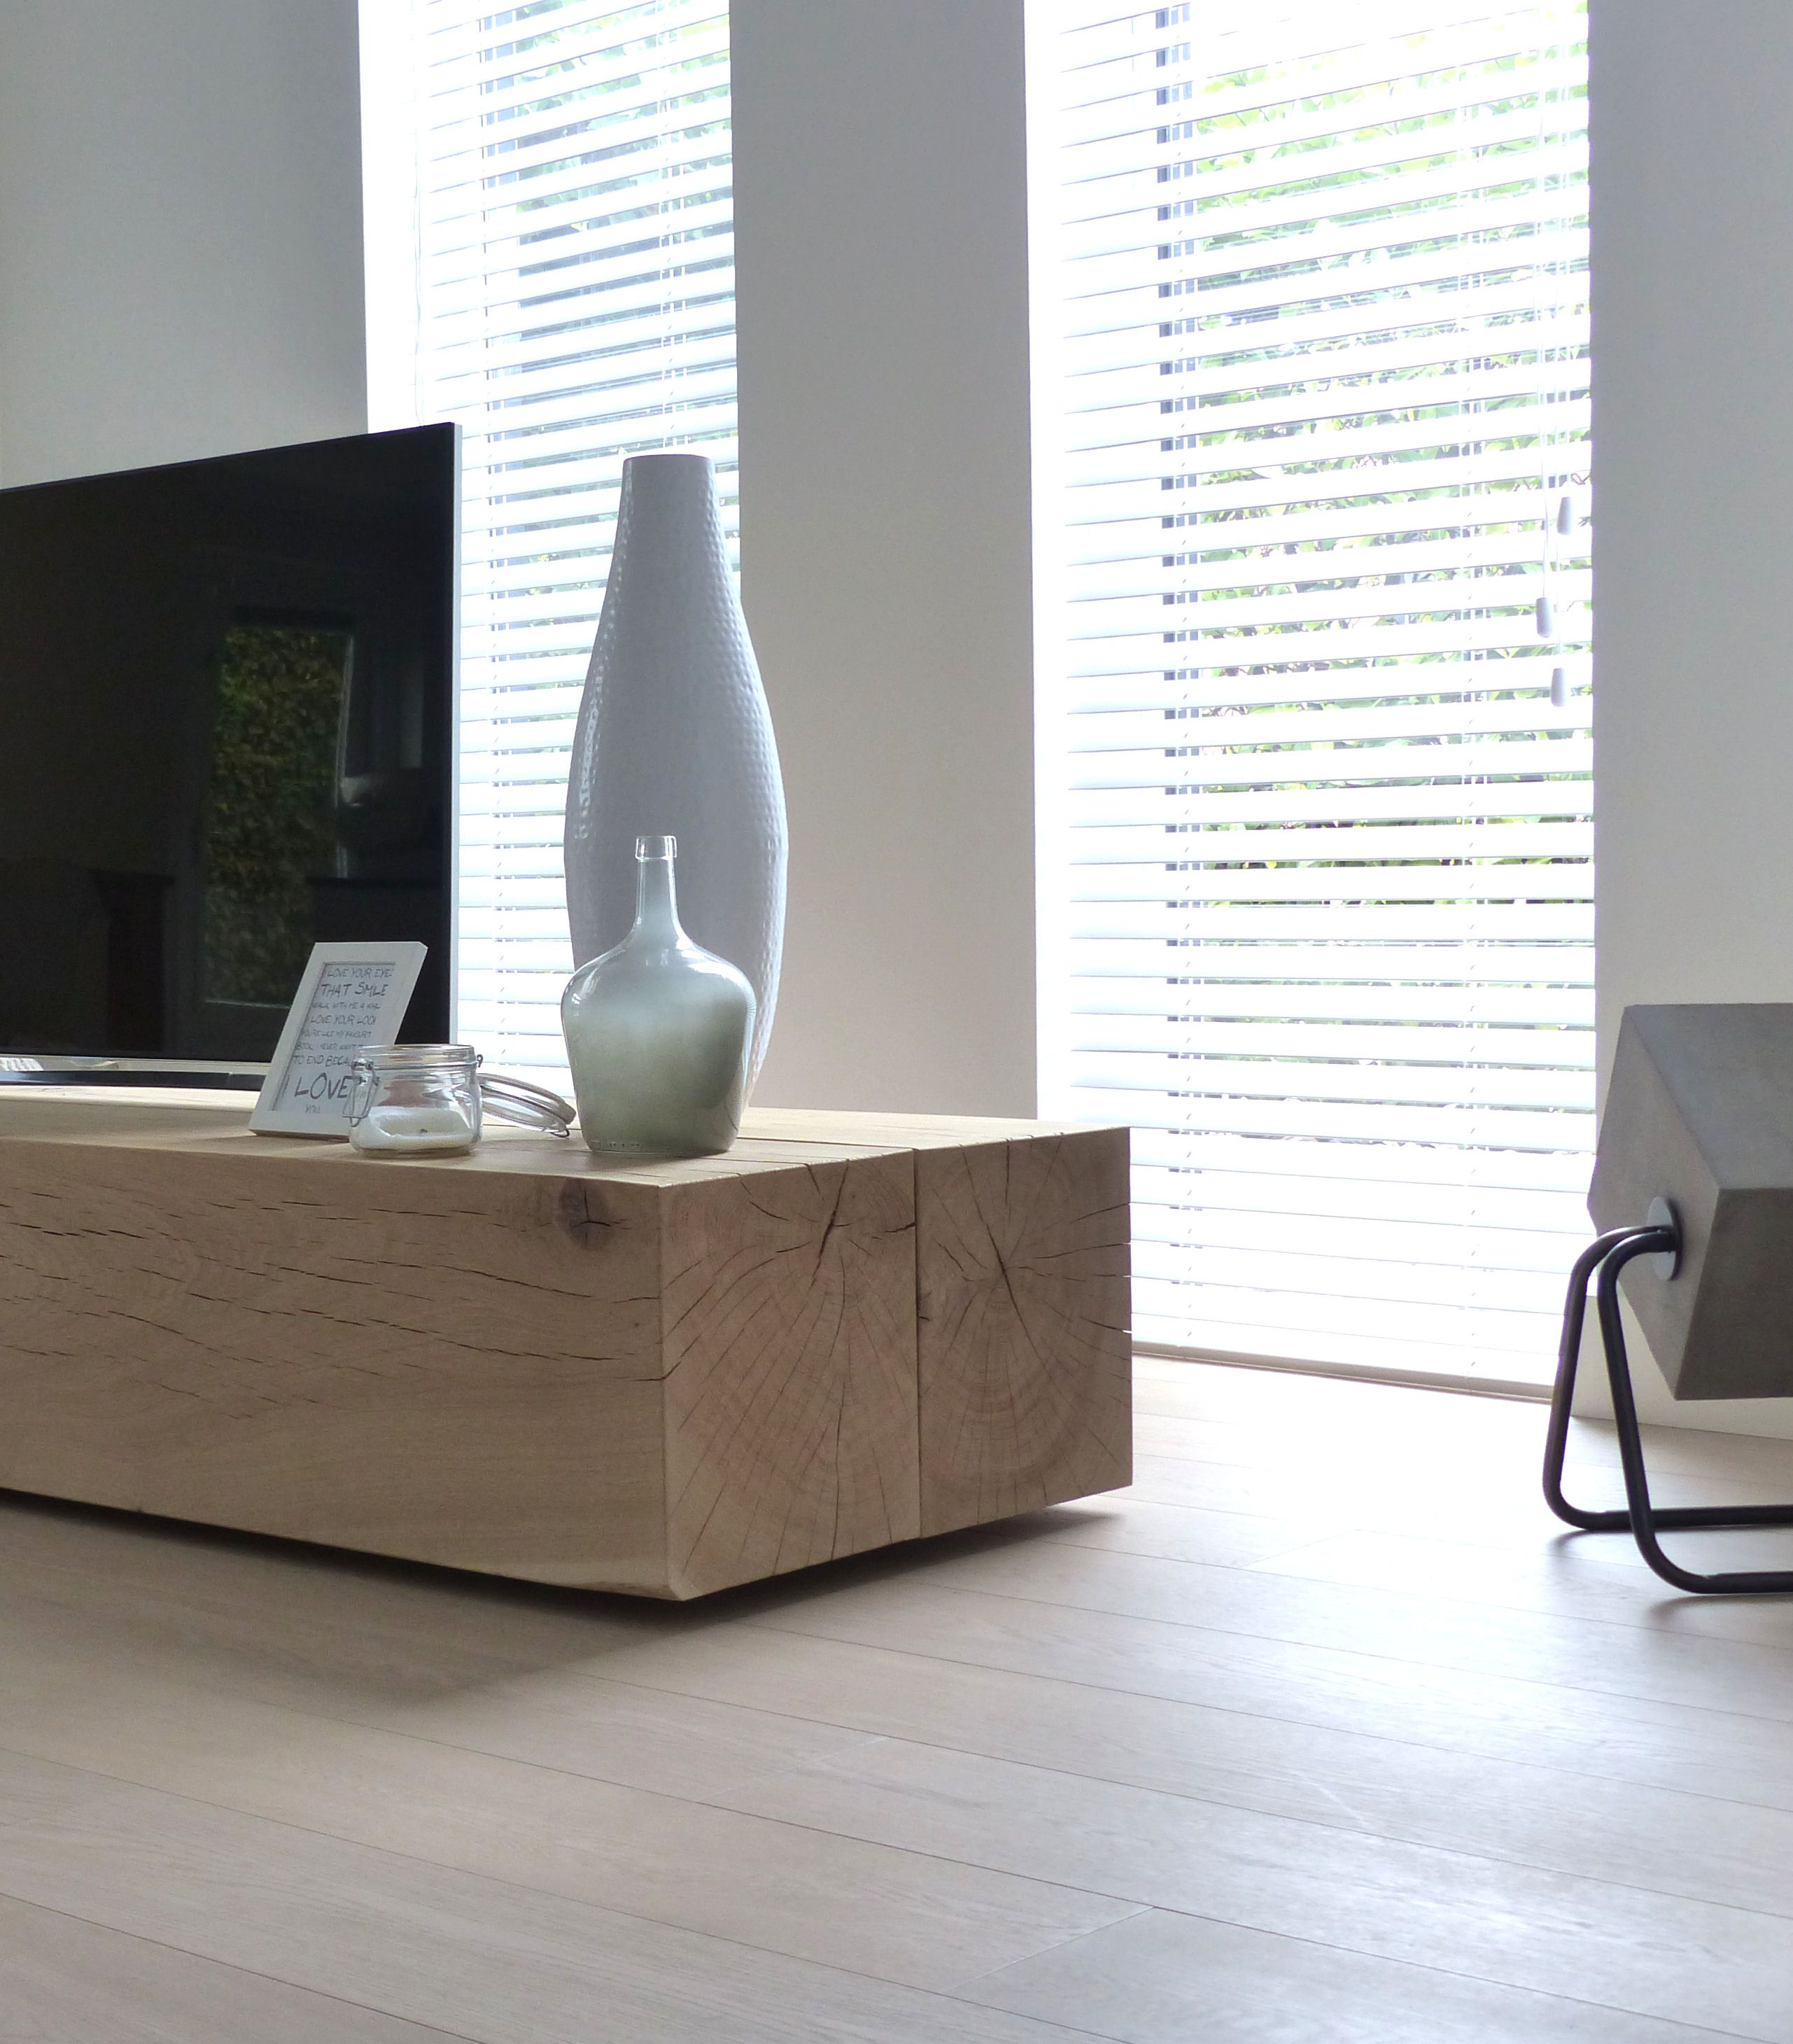 Zuiver Tv Kast.Restyling Livingroom With A Robust Solid Oak Beams Tv Cabinet